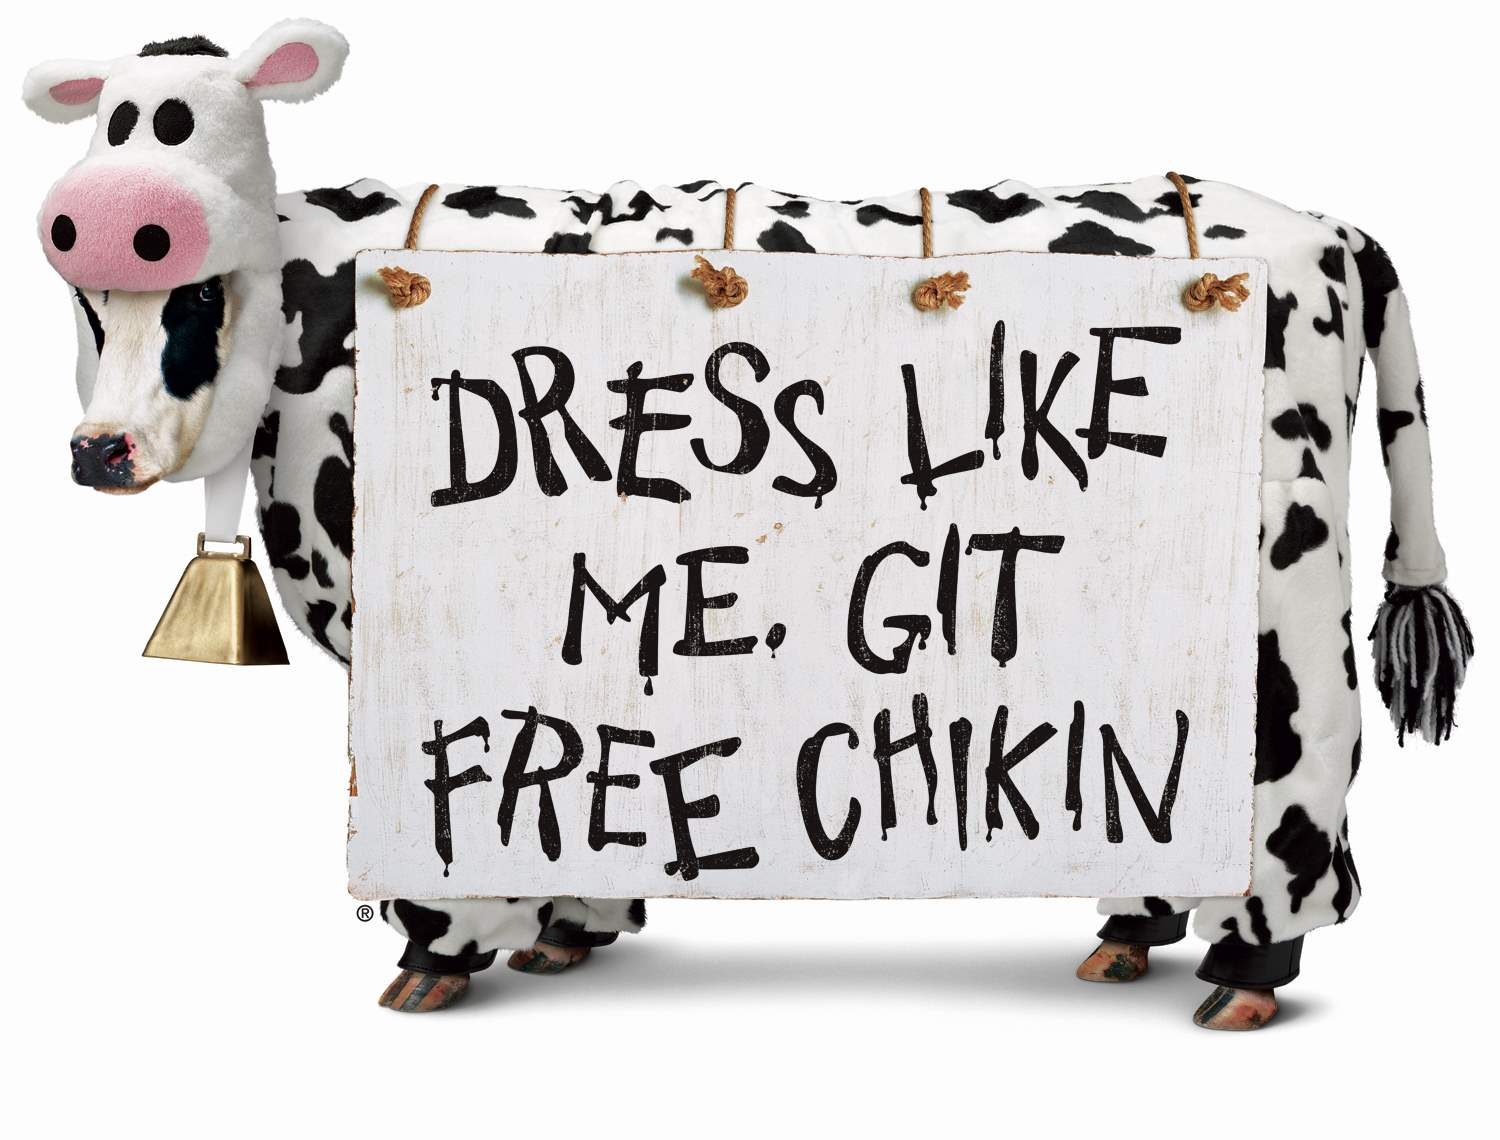 20th Anniversary Of The Eat Mor Chikin Cow Campaign Chick Fil A